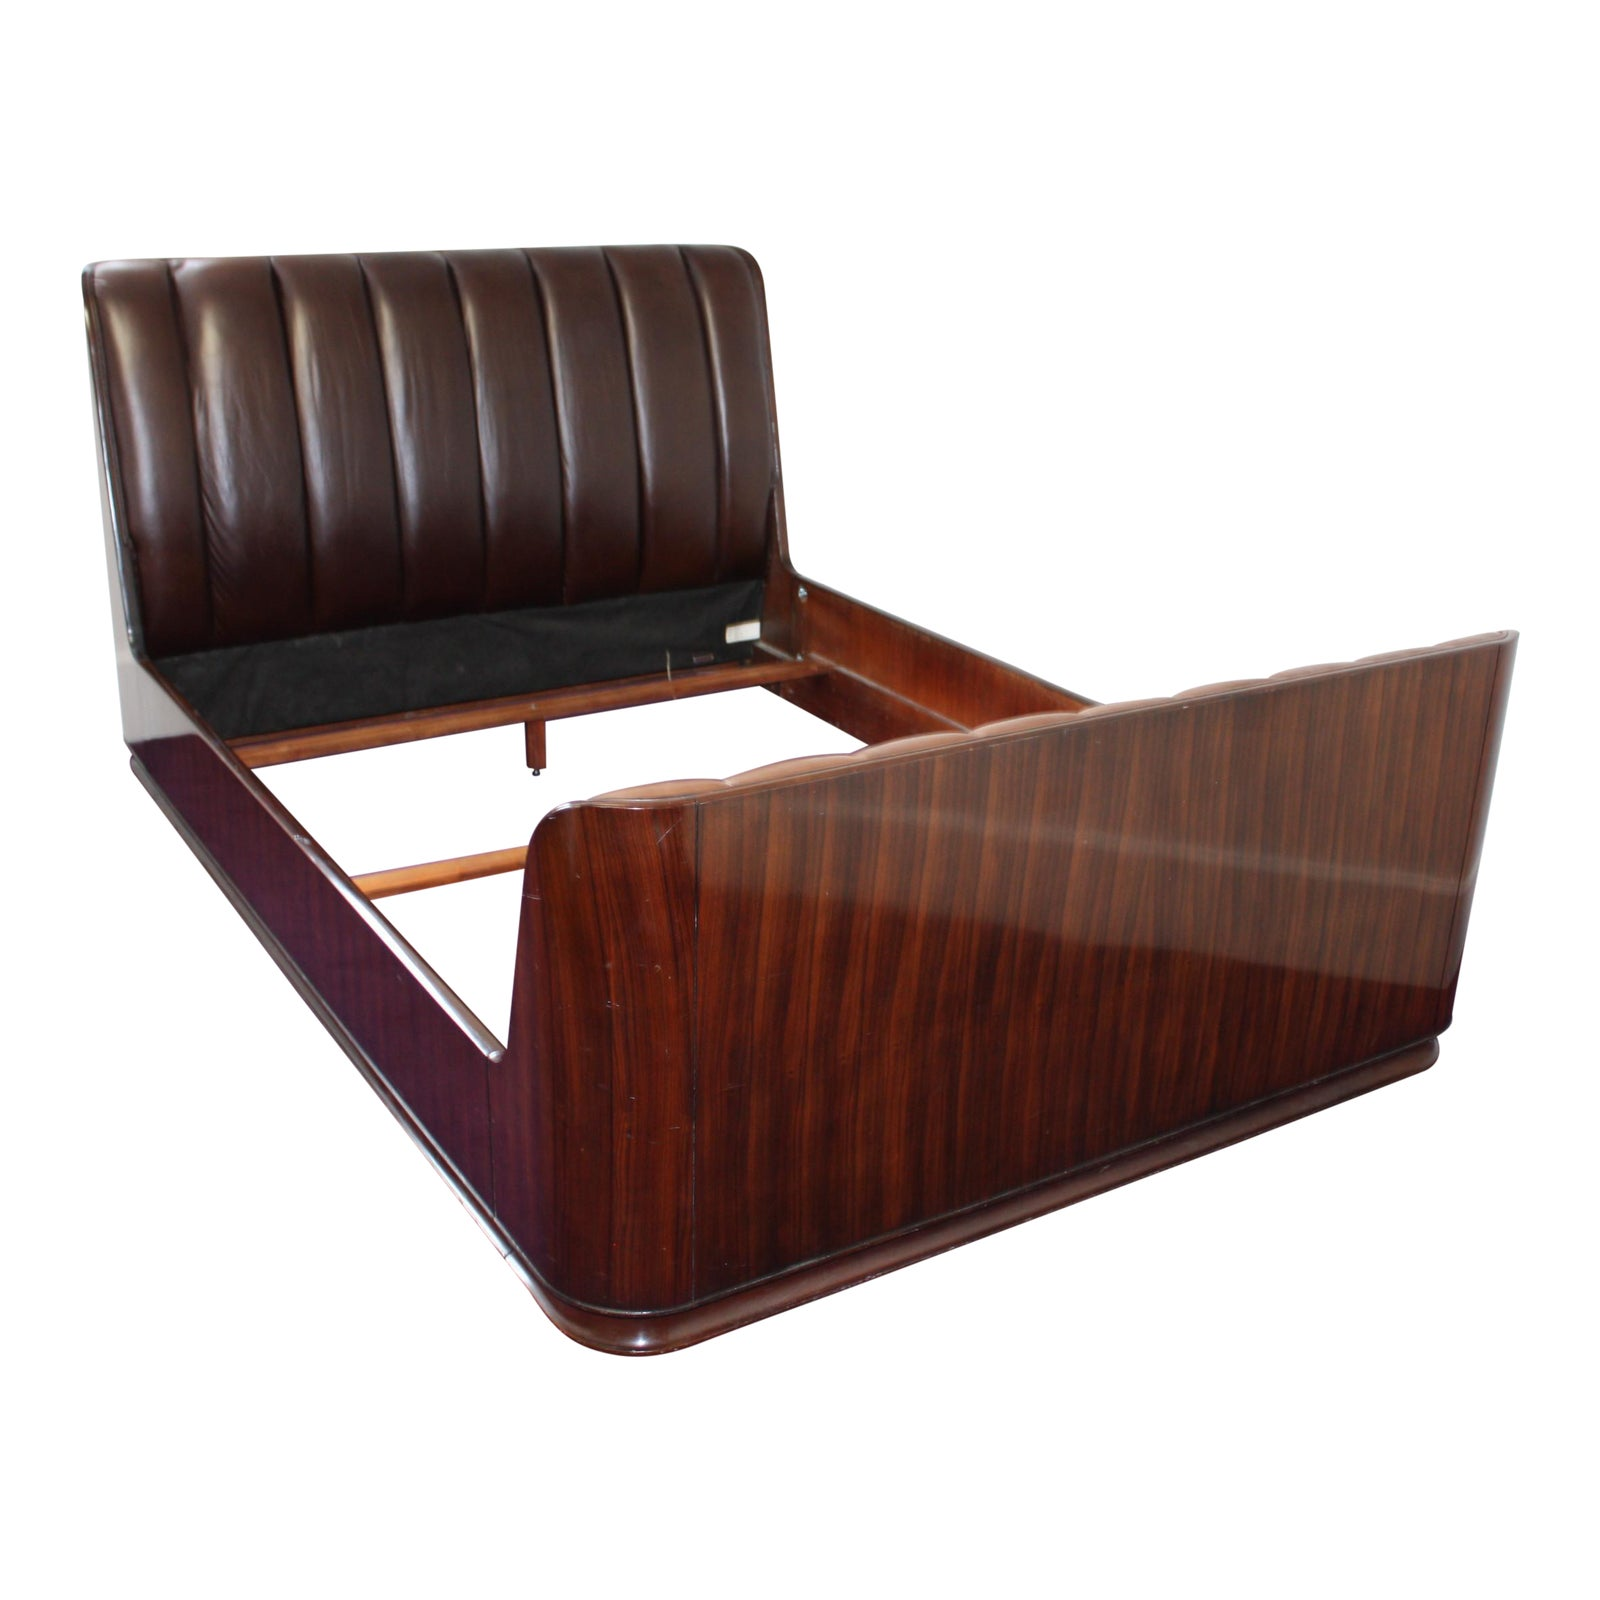 Modern Metropolitan Ralph Lauren Macassar Ebony & Brown Leather Queen